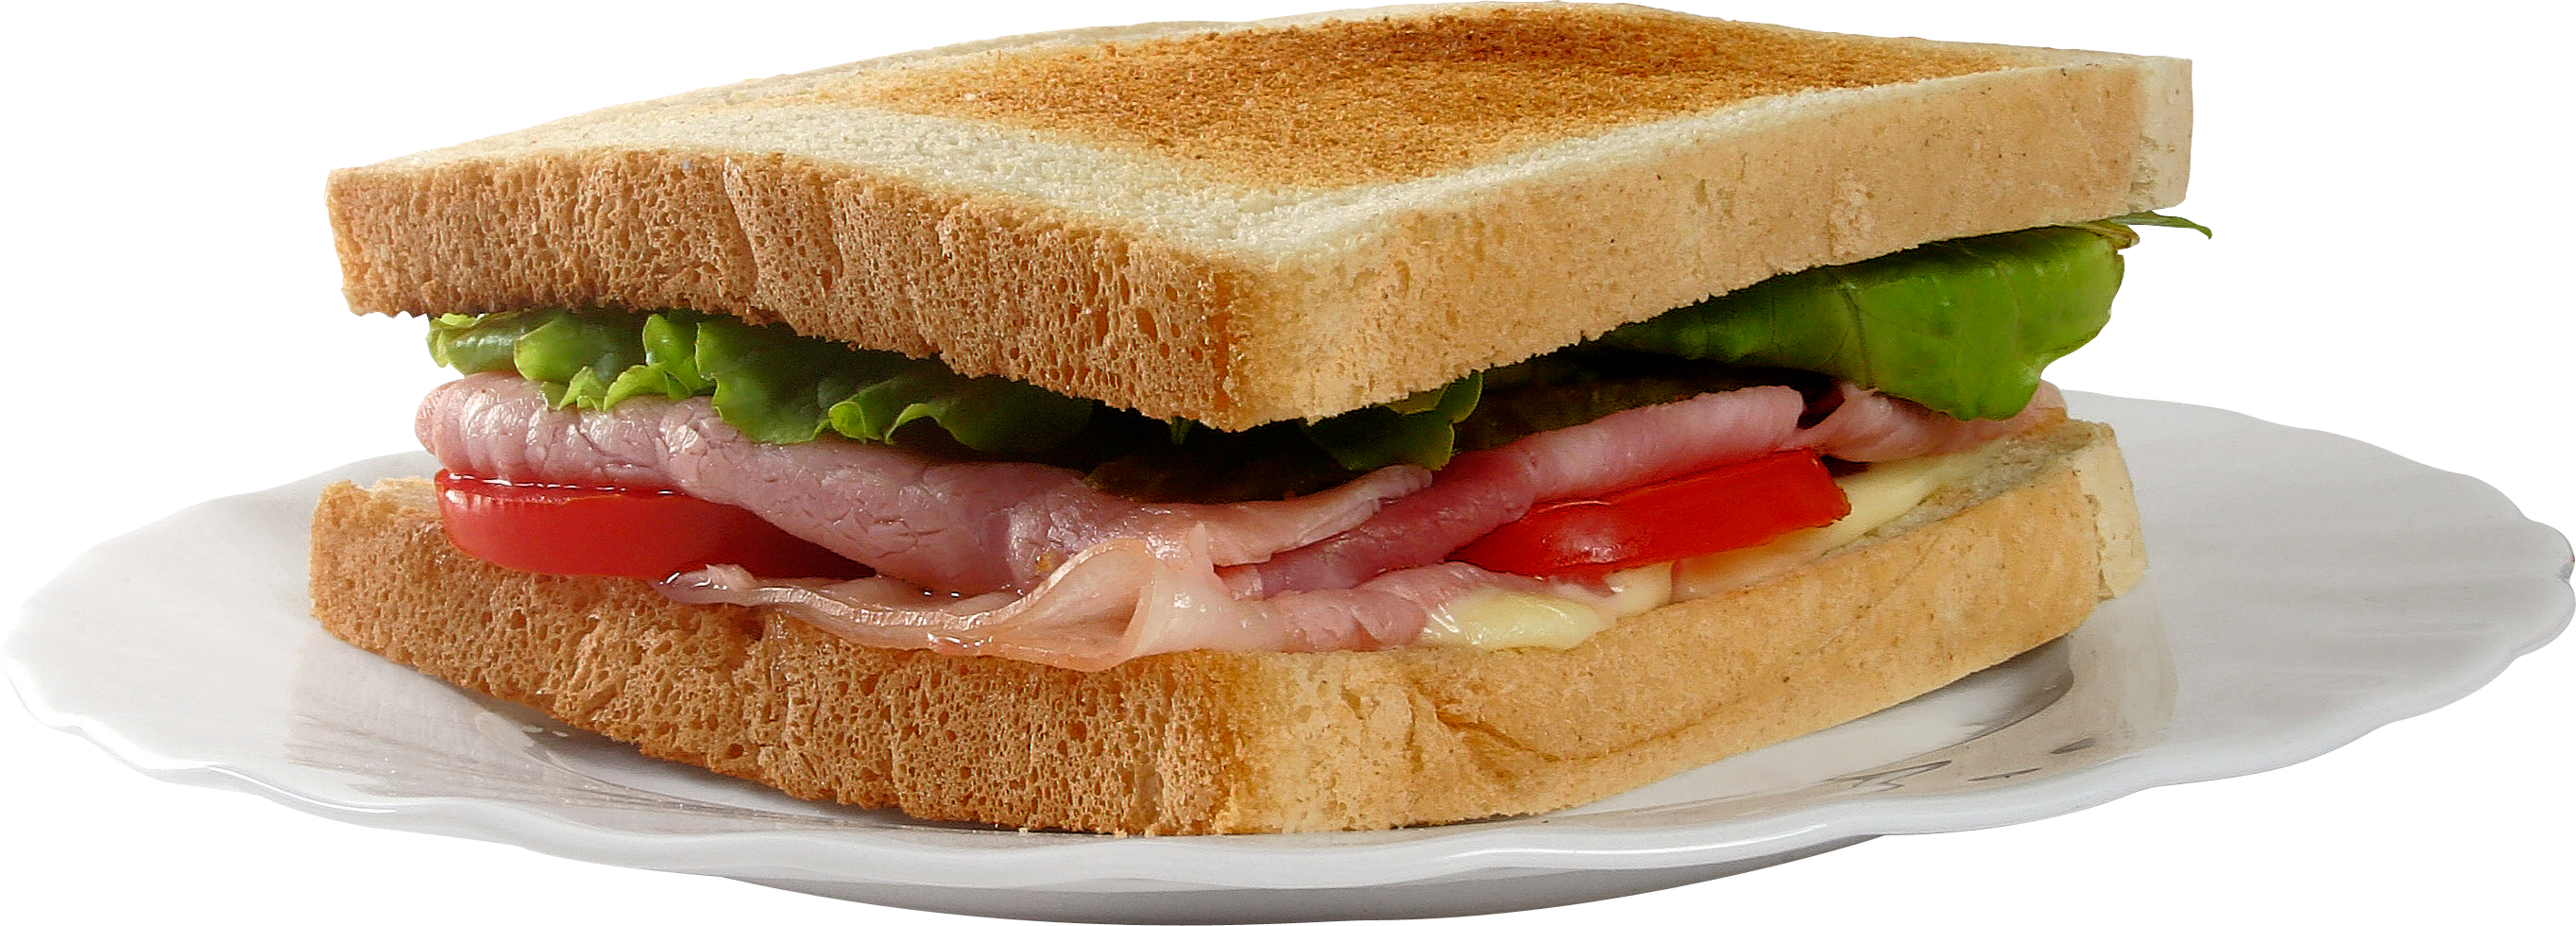 Toast on Plate PNG Image